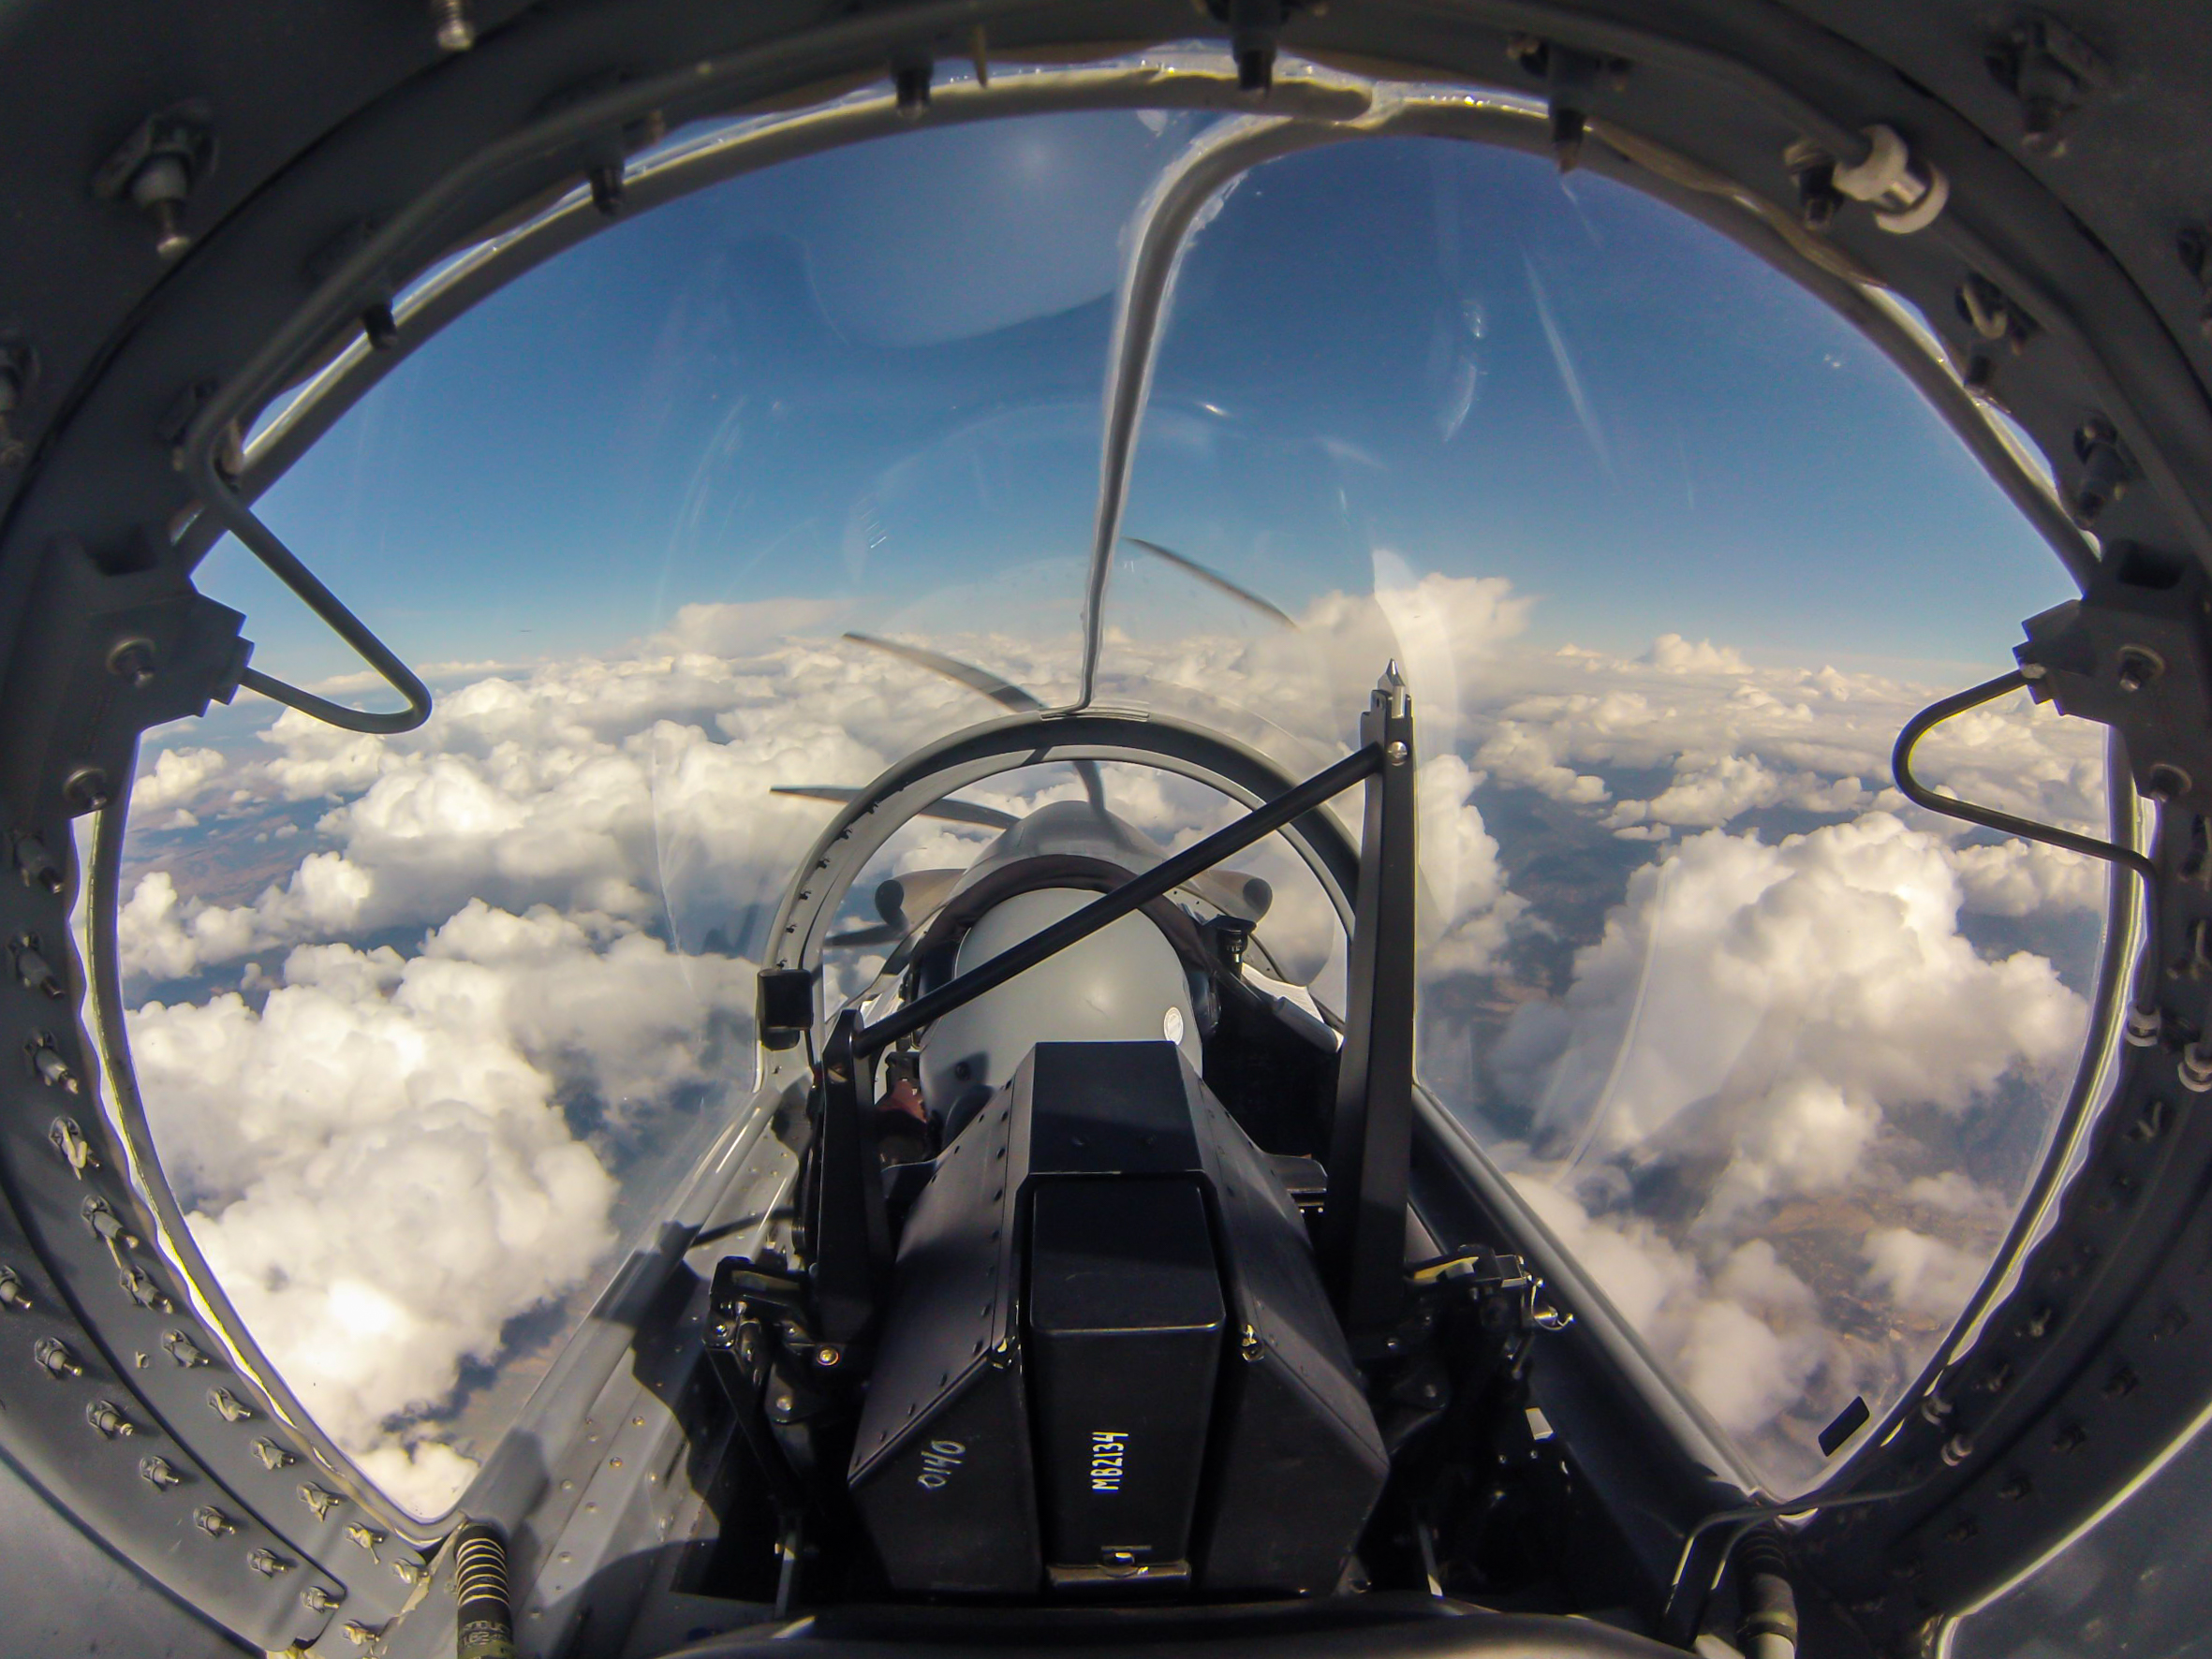 A cool shot from the rear seat while up at altitude enroute to Lethbridge